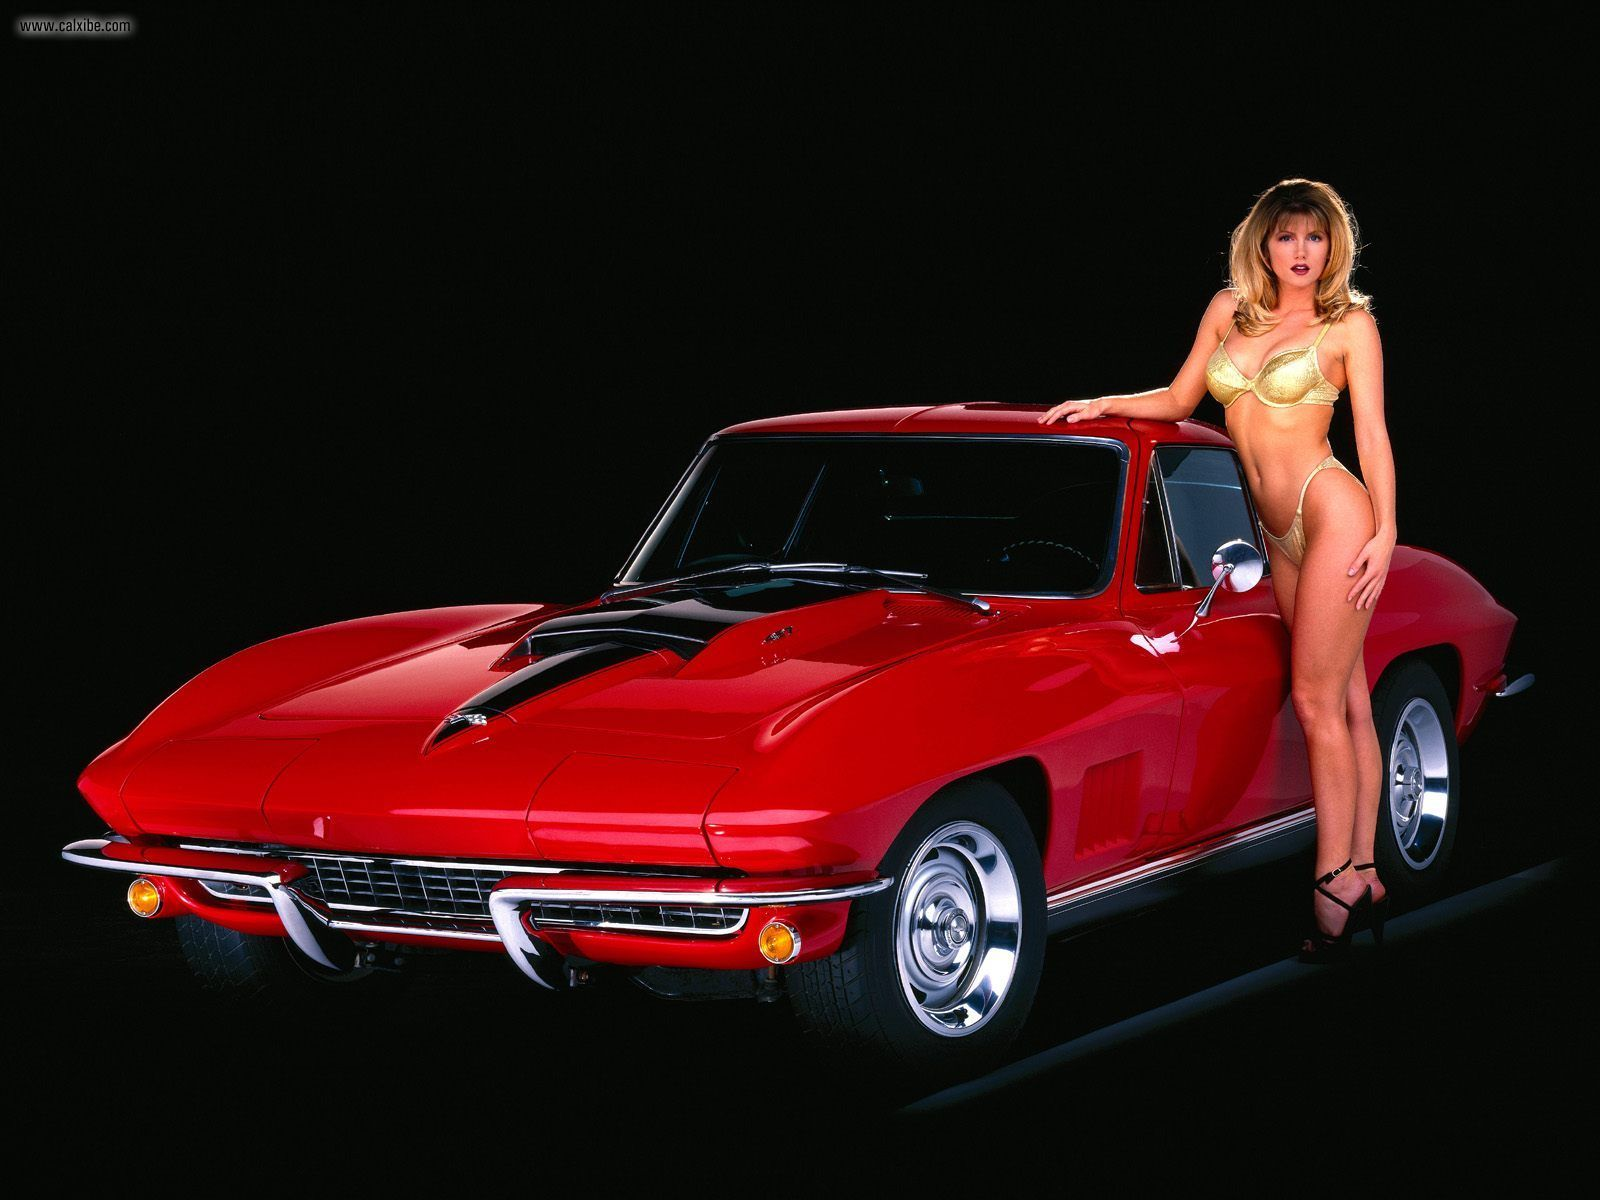 corvette-and-sexy-girl-wallpaper-male-cum-stopped